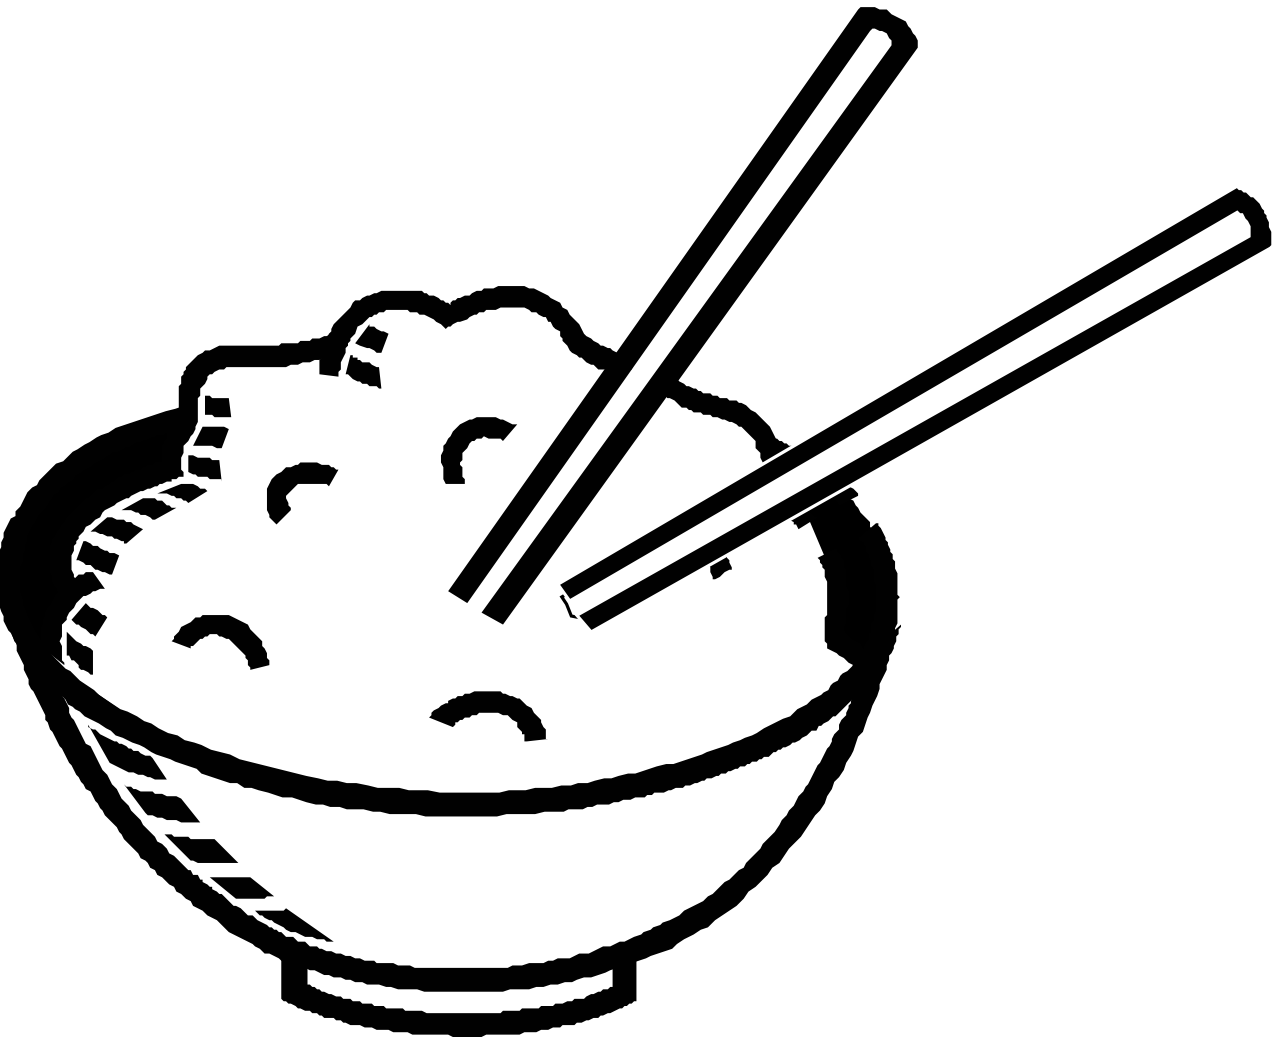 Flour clipart black and white. Rice panda free images